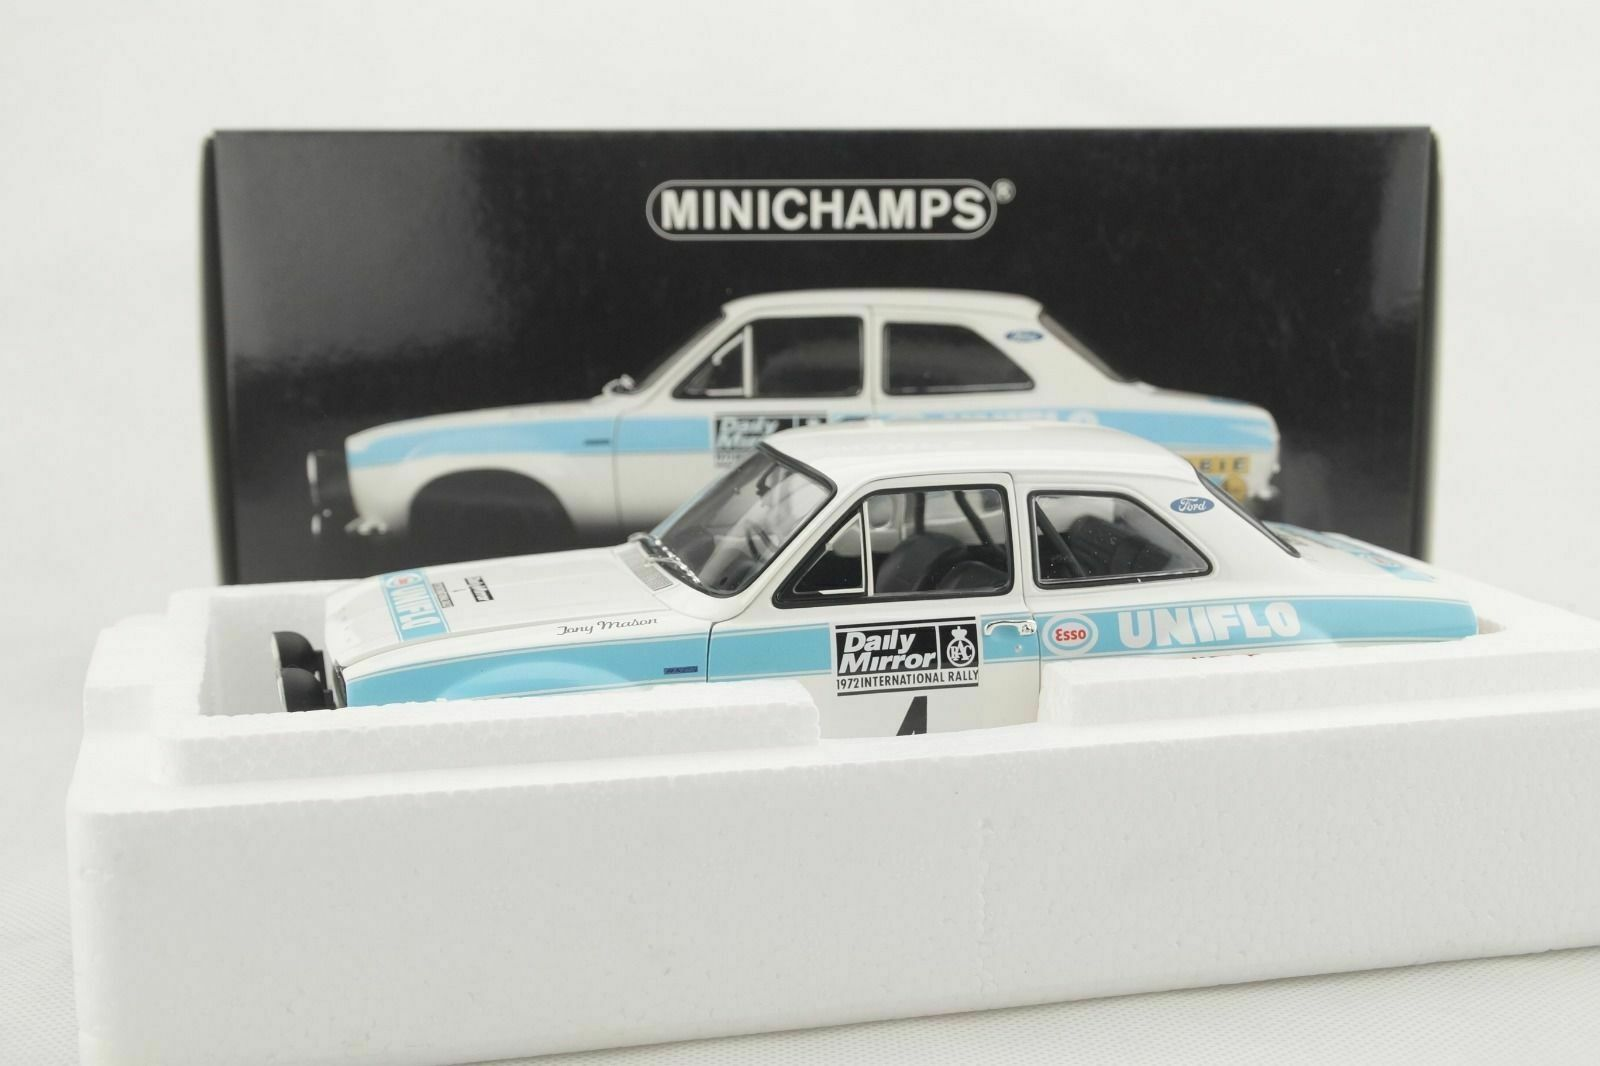 1 18 Minichamps - Ford Escort i Rs 1600 Daily Mirror Rac Rally 1972